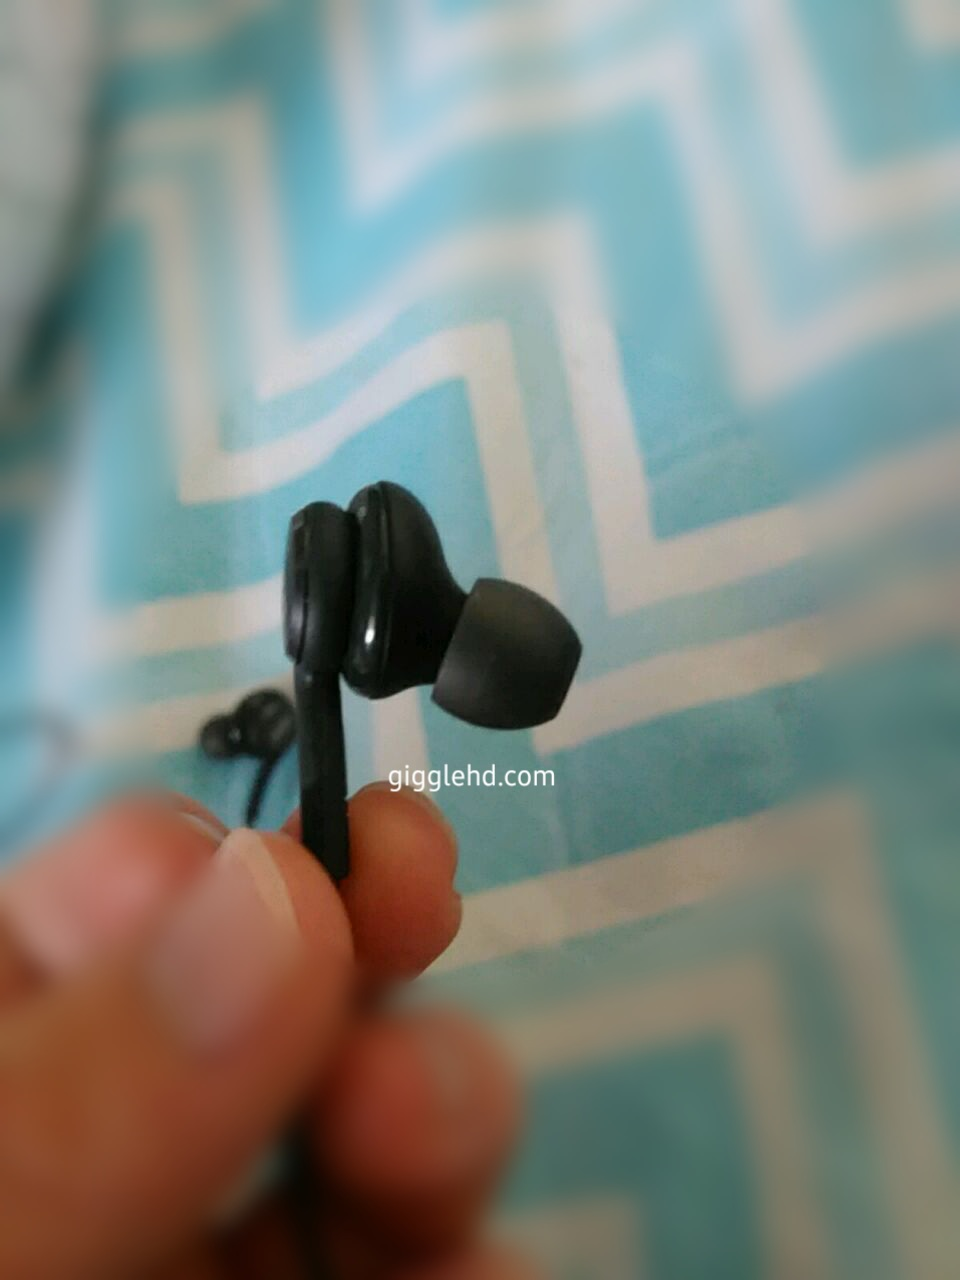 Earbuds samsung s8 plus - headphones samsung plus